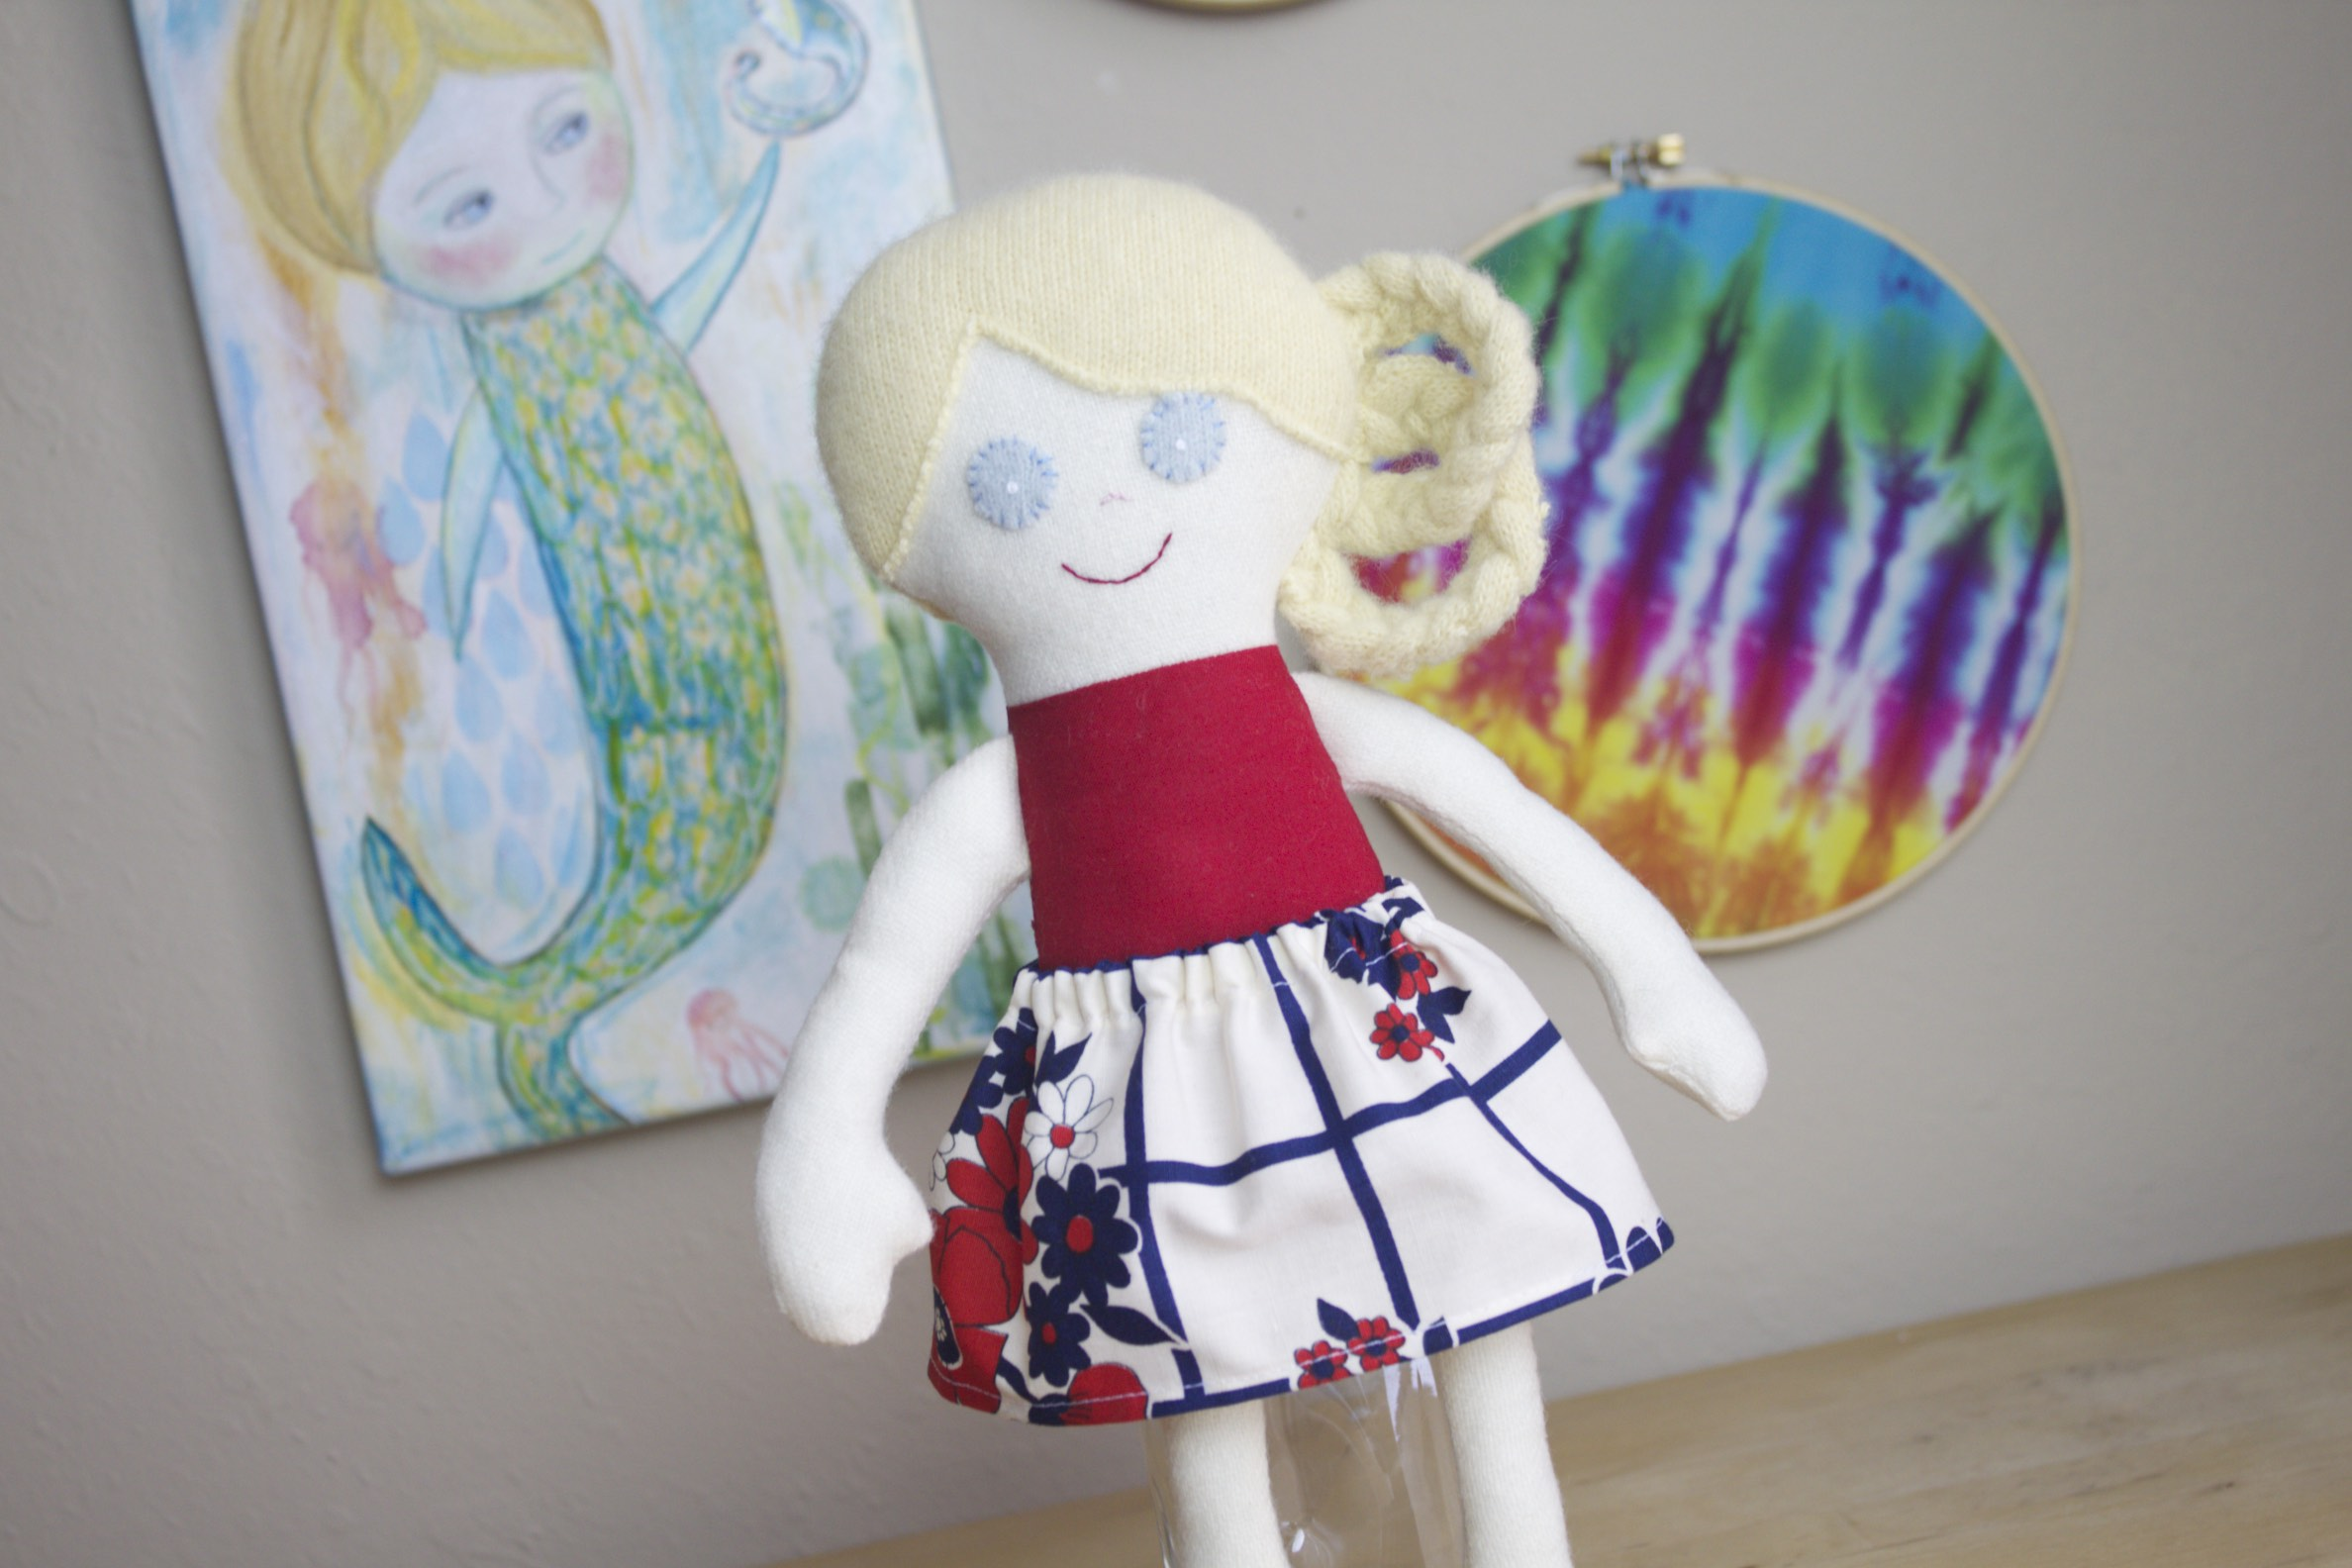 Upcycled handmade doll